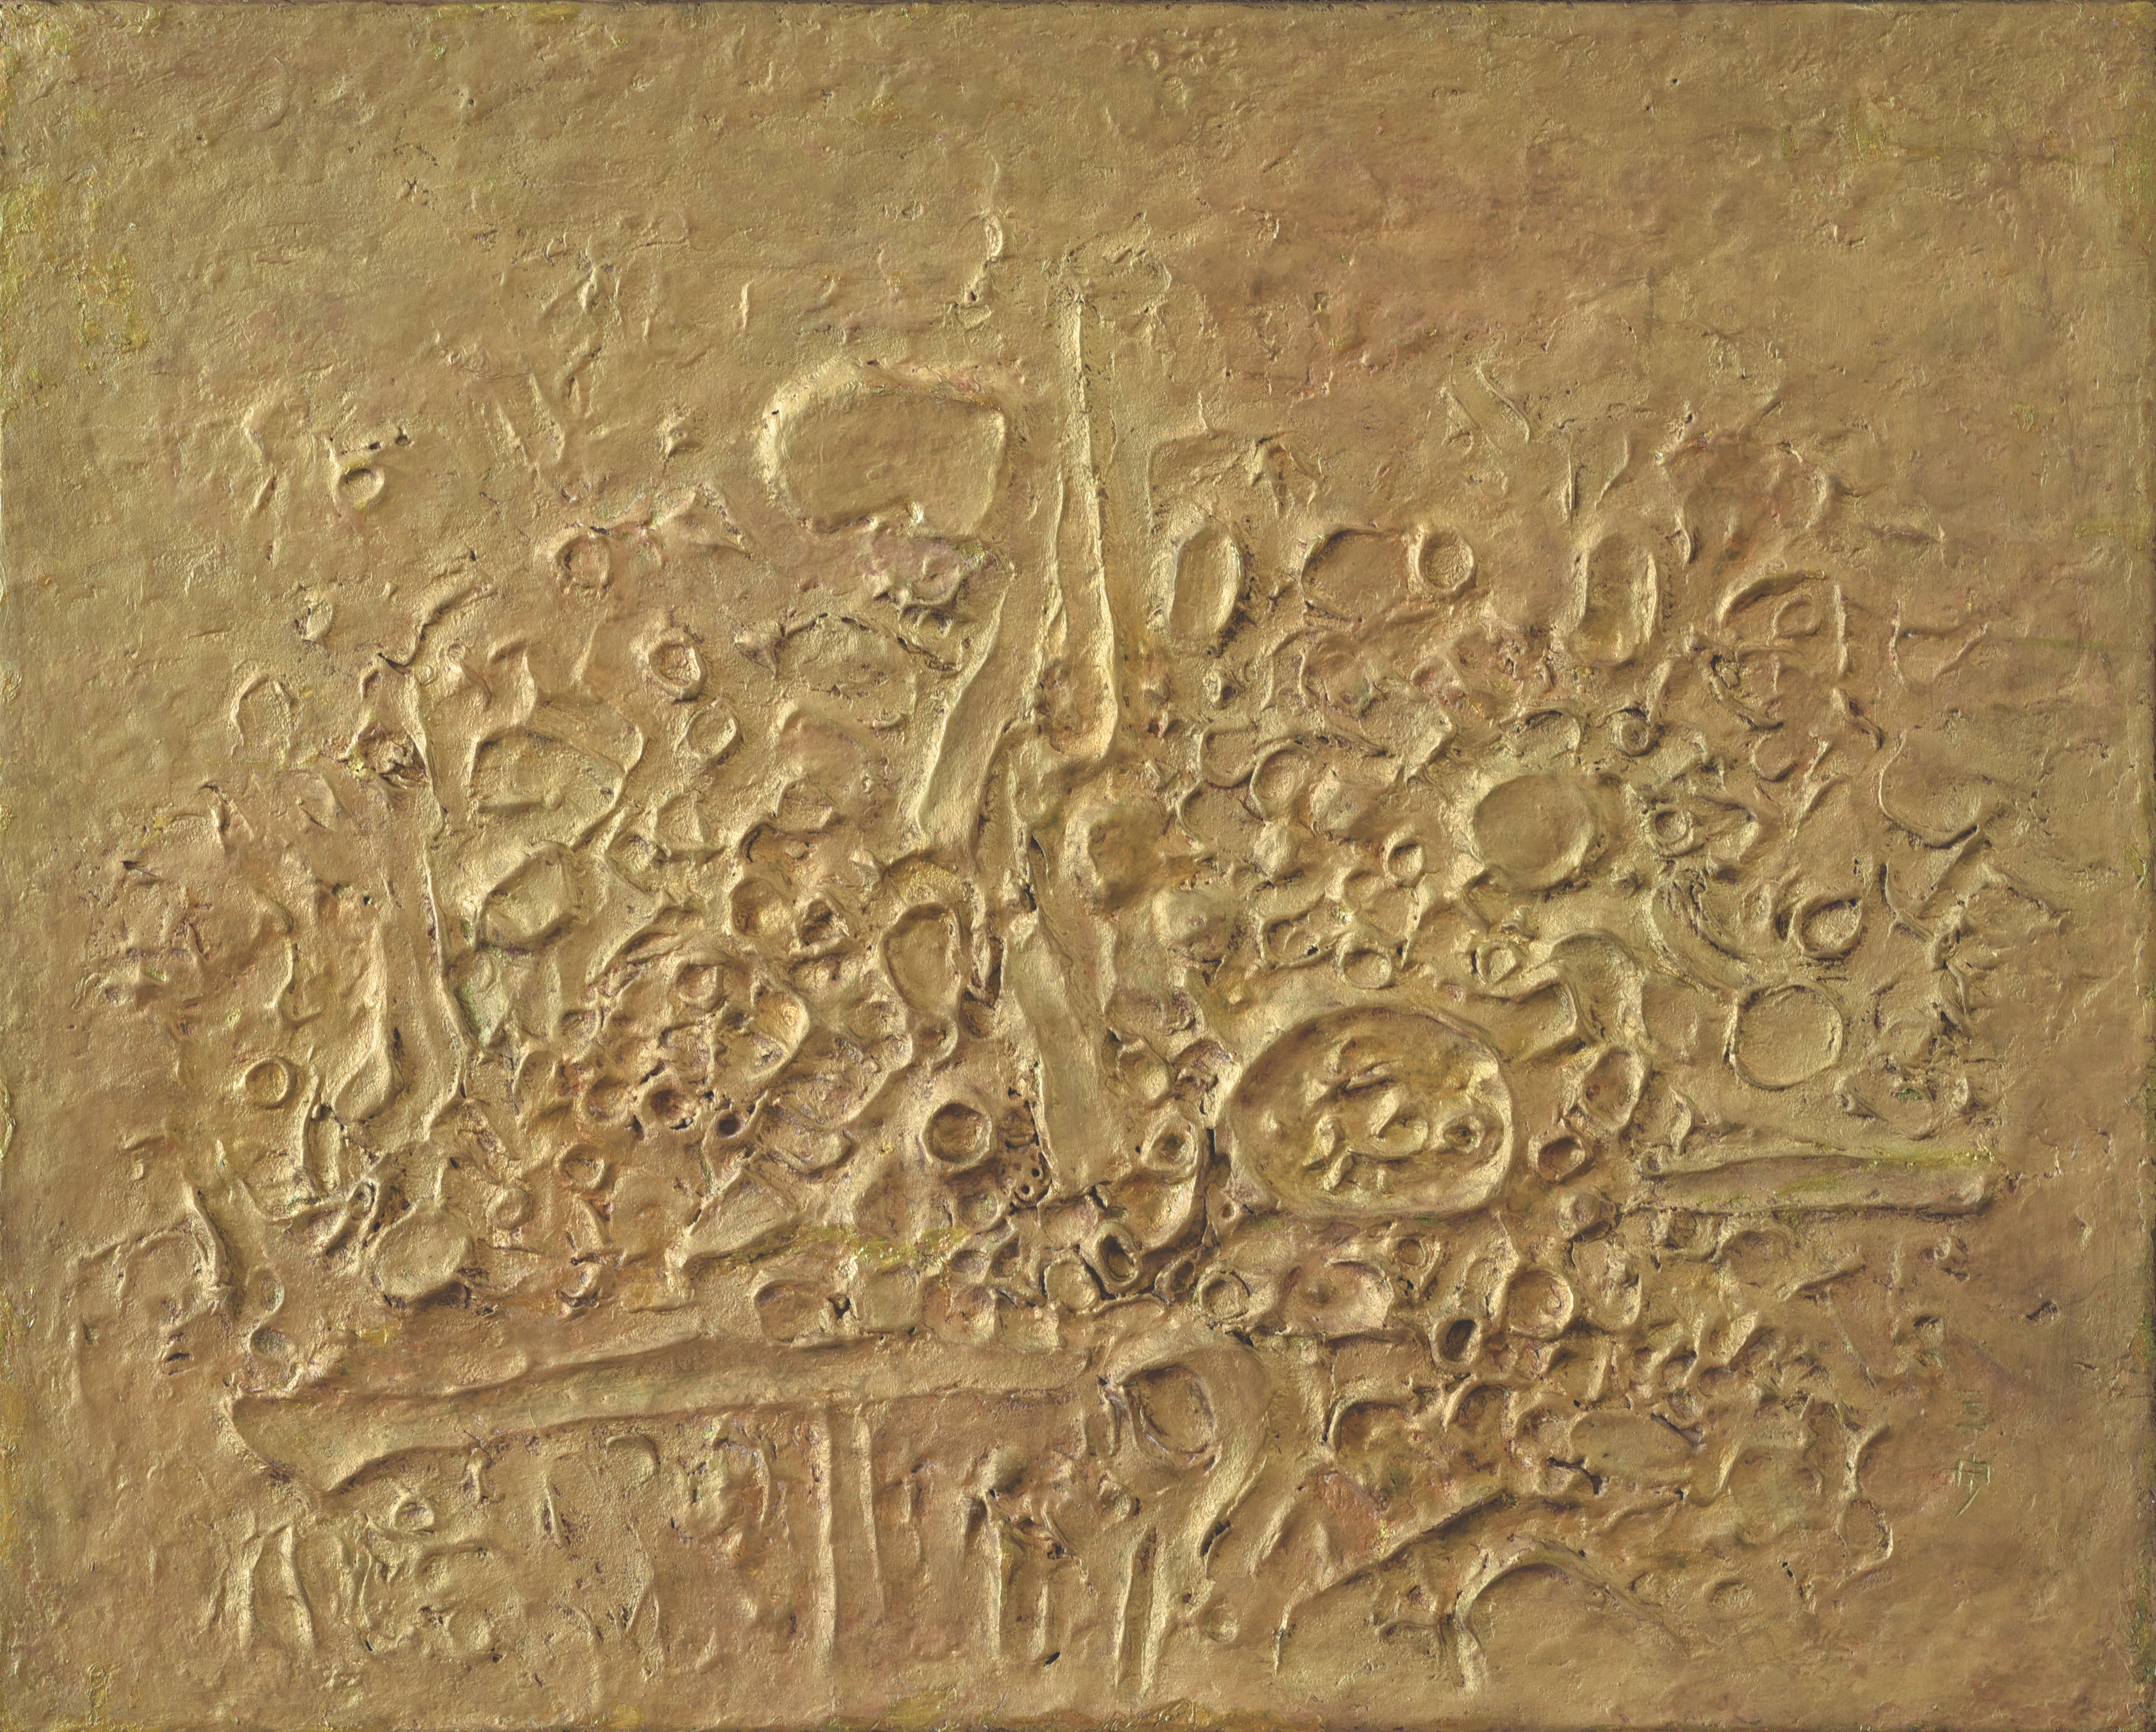 Cheong Soo Pieng, Motion, mixed media on board, 61 x 76 cm, 1971